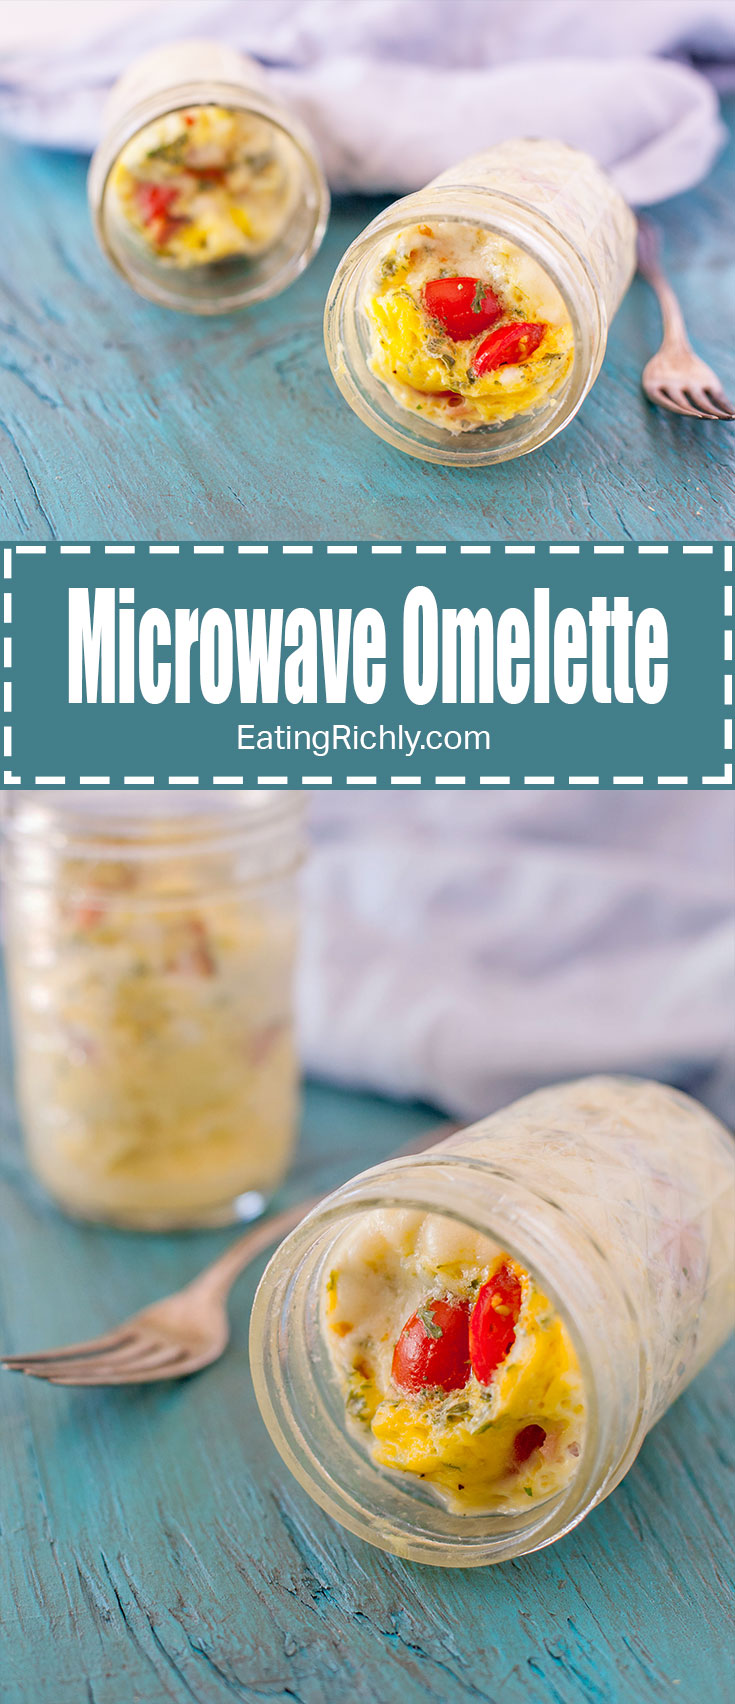 This microwave omelette to go is the perfect quick and easy hot breakfast in a jar. It's packed with protein, and both gluten free and dairy free! From EatingRichly.com